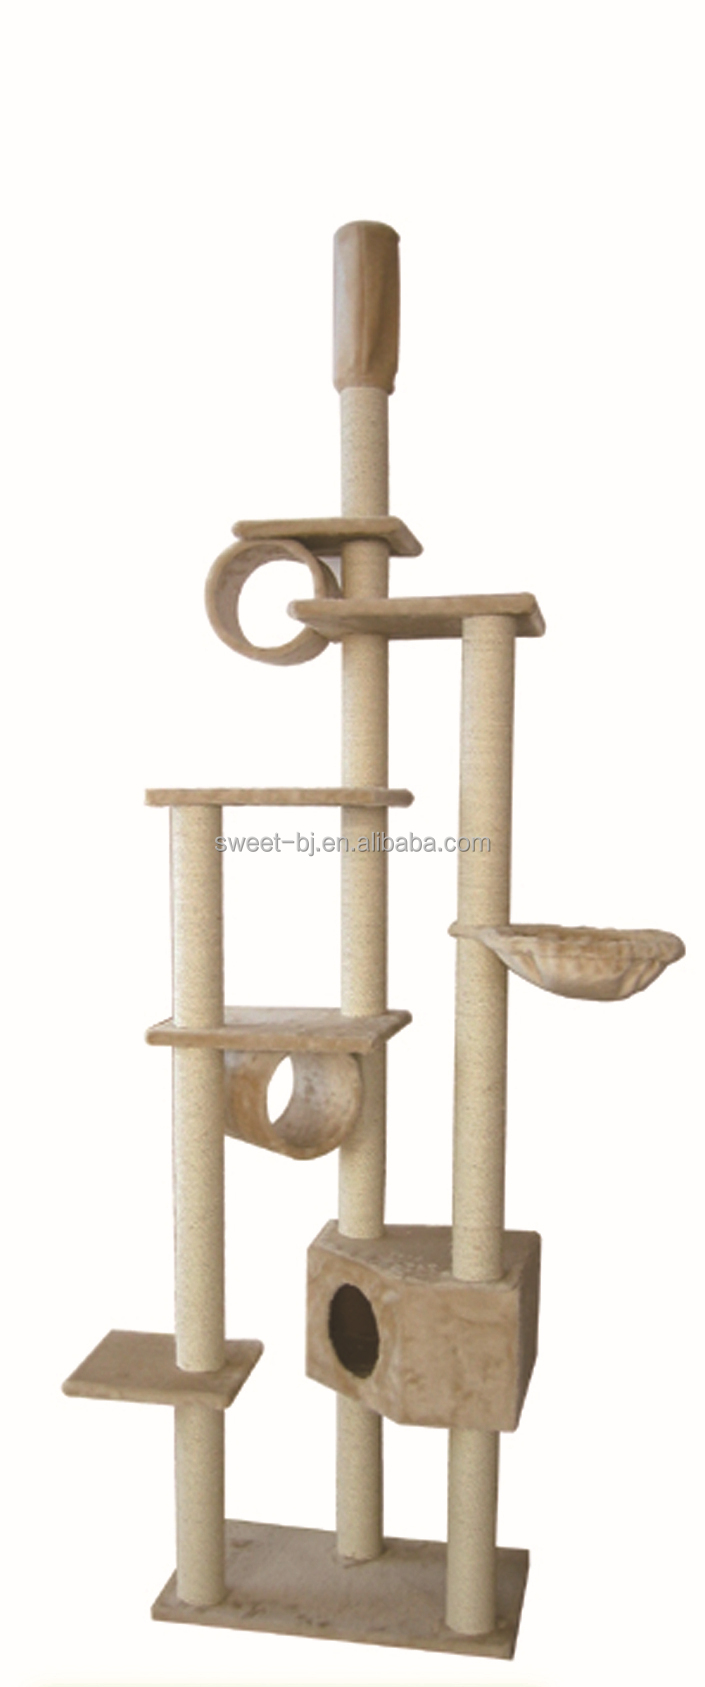 Sweet Factory Supplier Wholesale Manufacturer Wooden Cat Furniture Tree Cats Luxury Plastic Cat